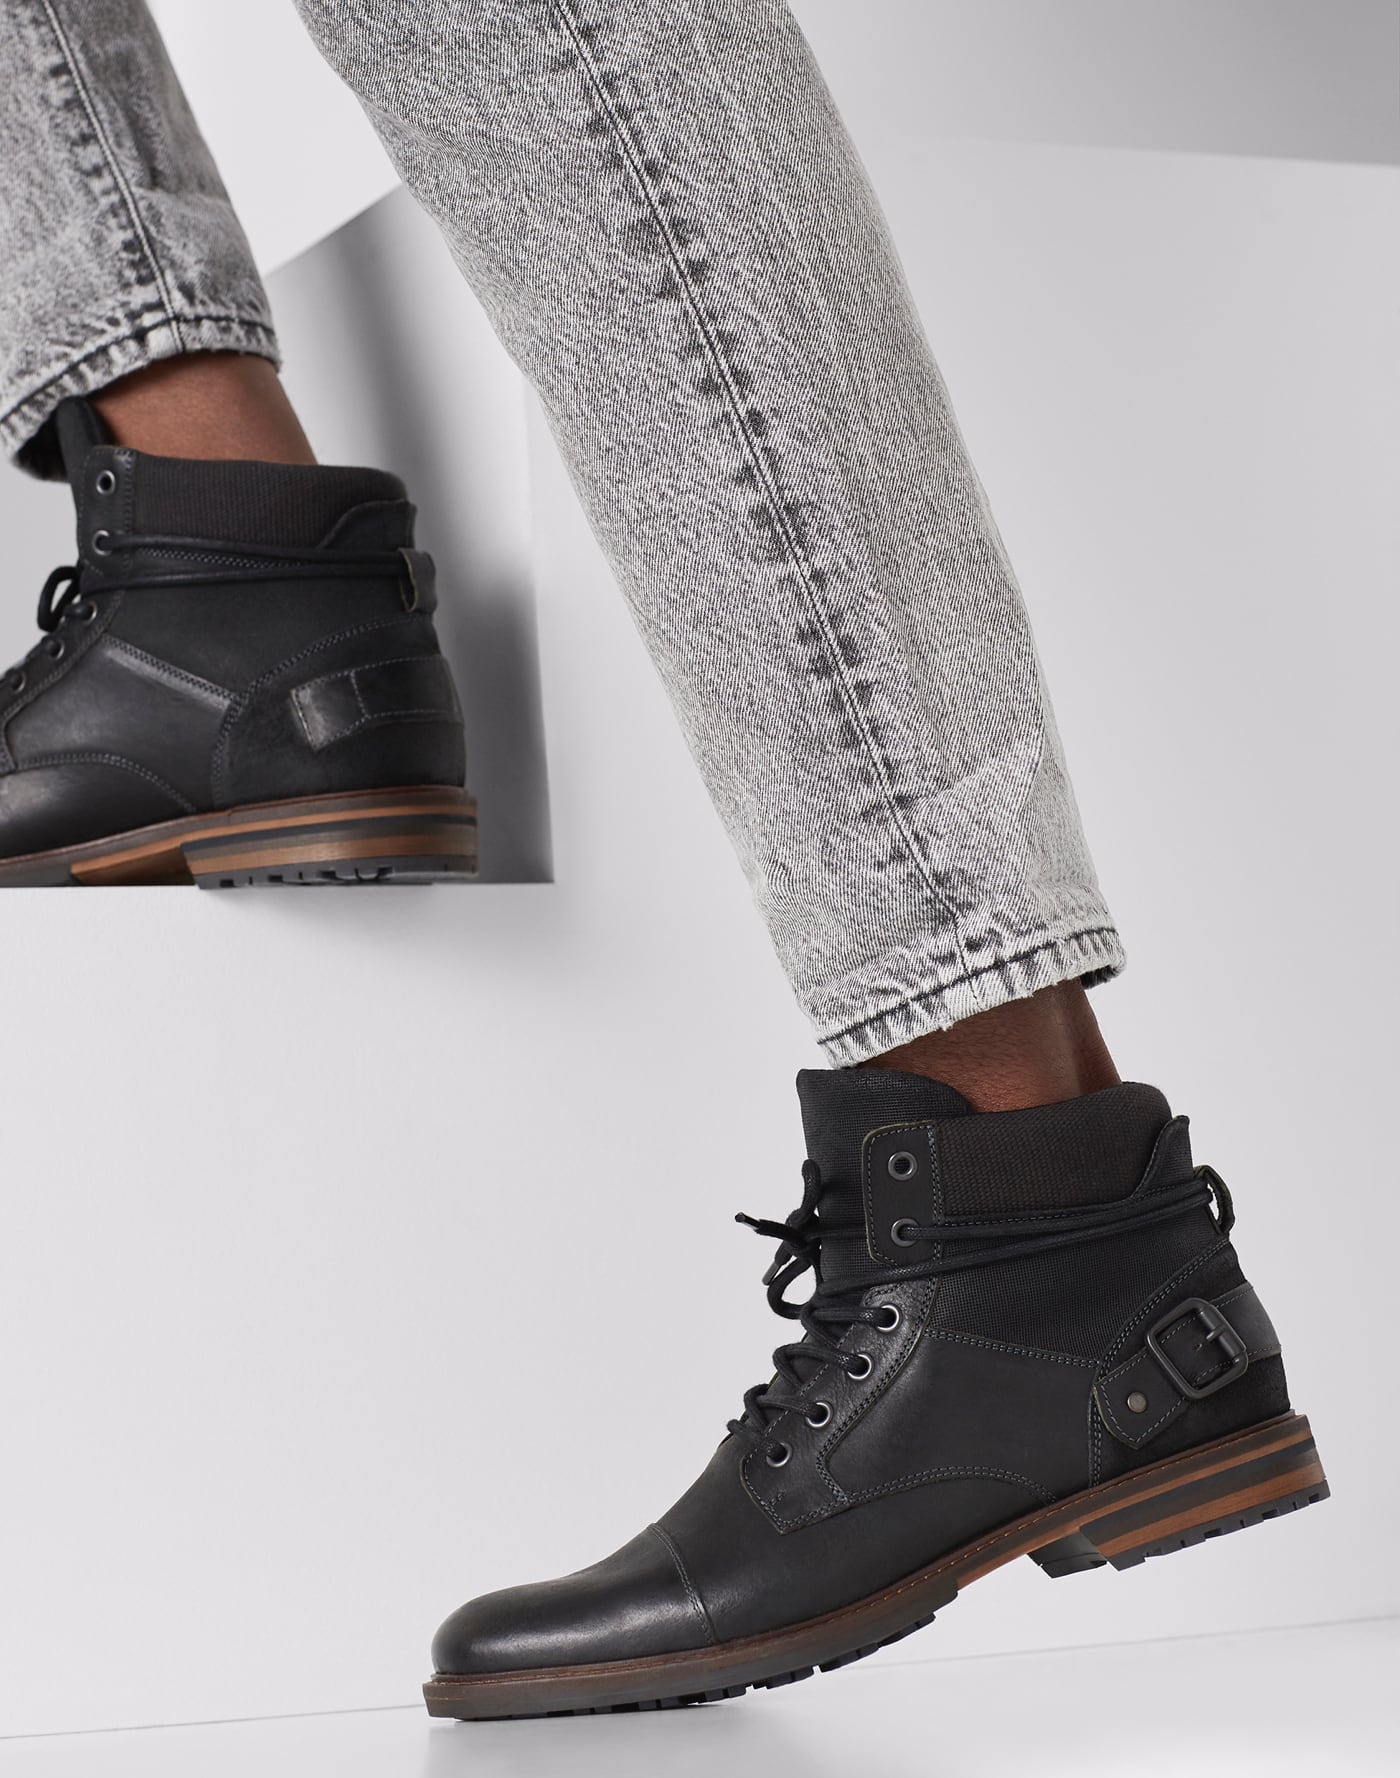 personalizzate cerca genuino 2019 professionista Men's Shoes, Boots, Sandals, Sneakers, Bags and Accessories ...